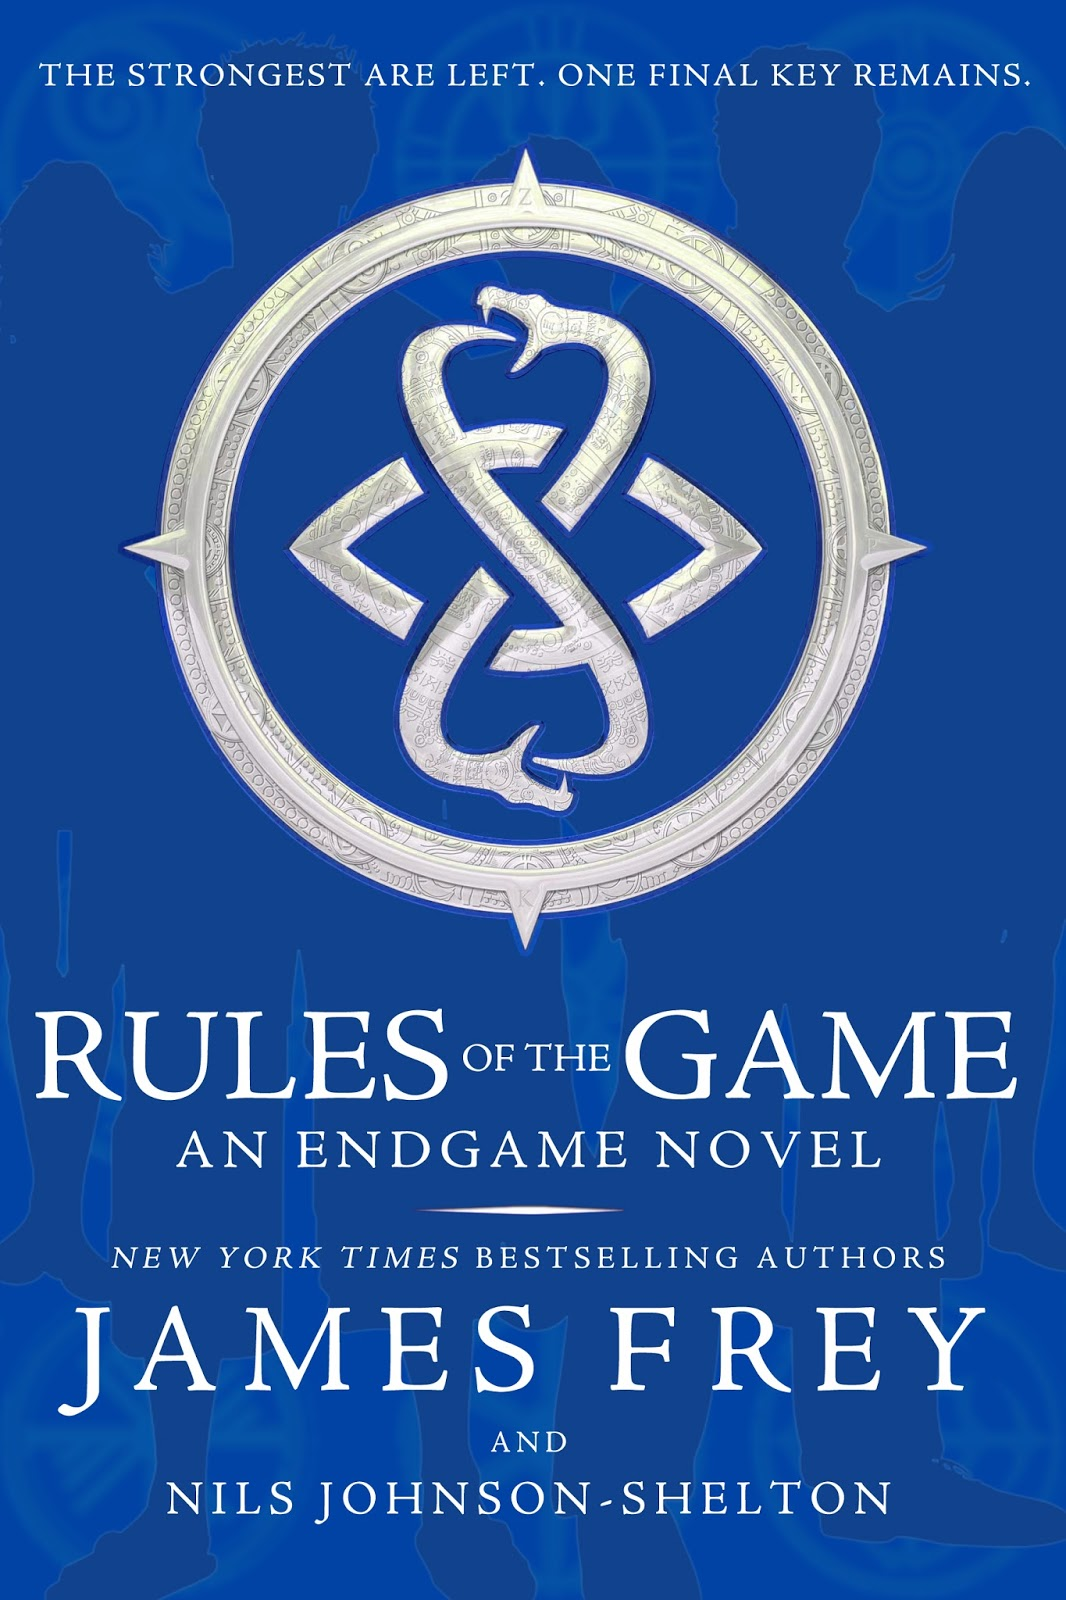 Rules of the Game by James Frey and Nils Johnson-Shelton